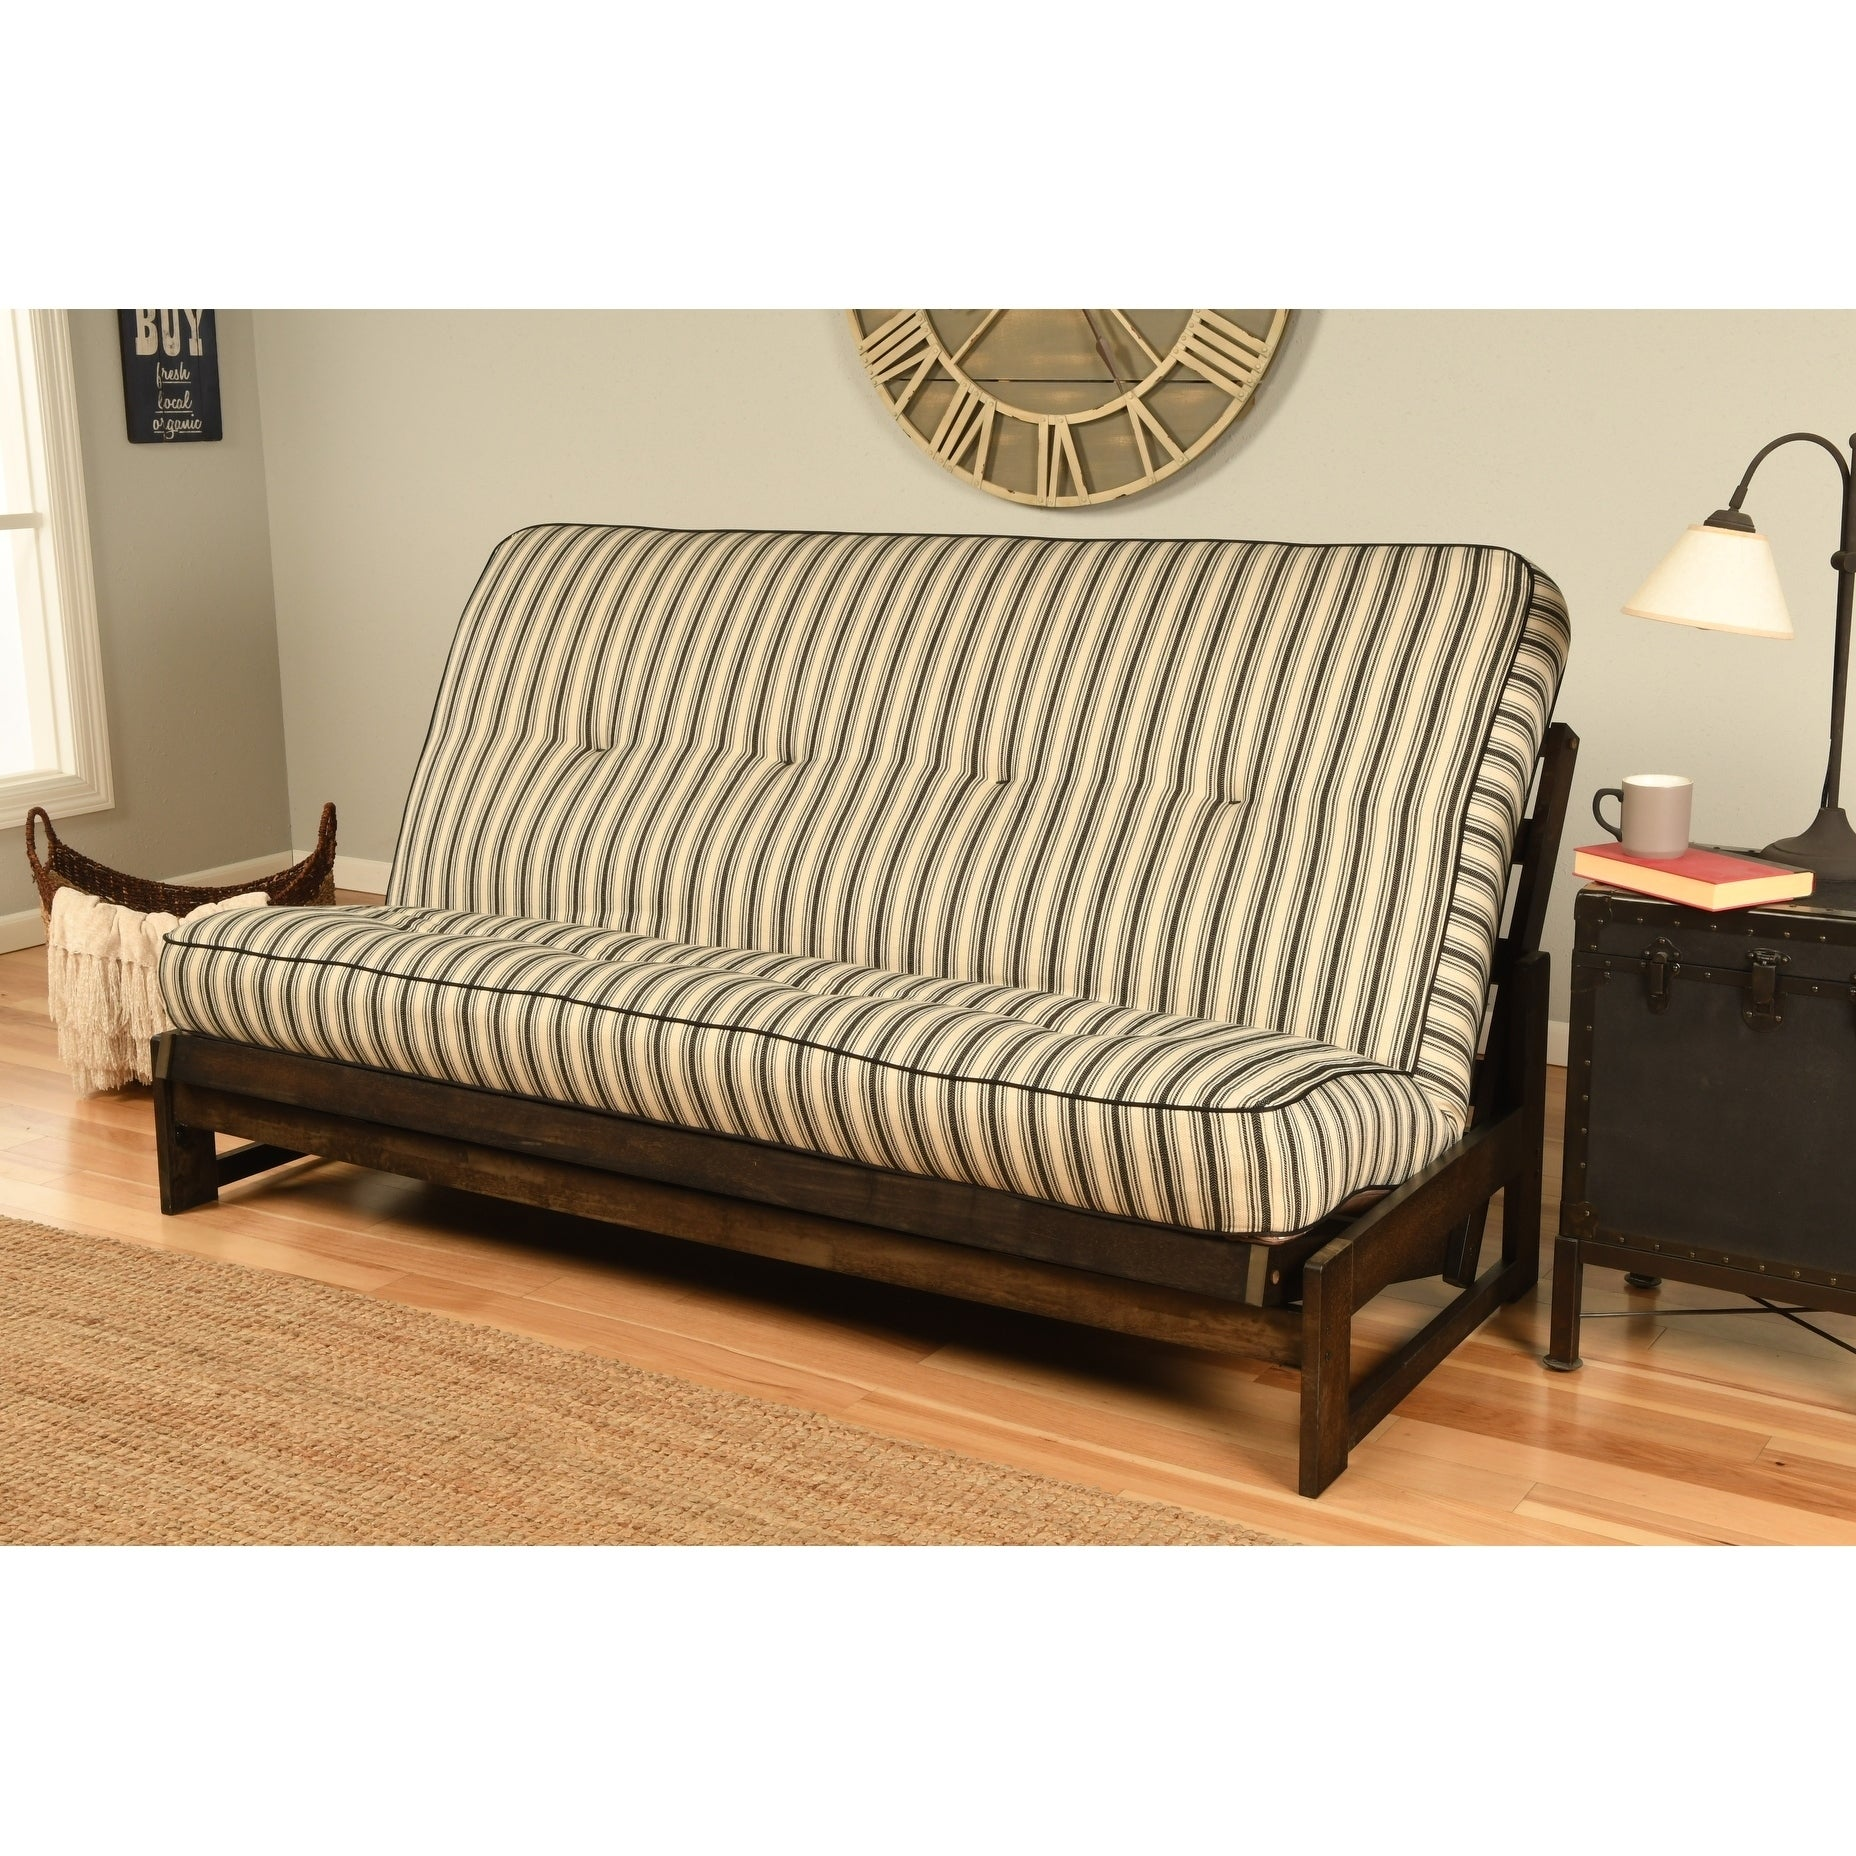 Fabric Futons Online At